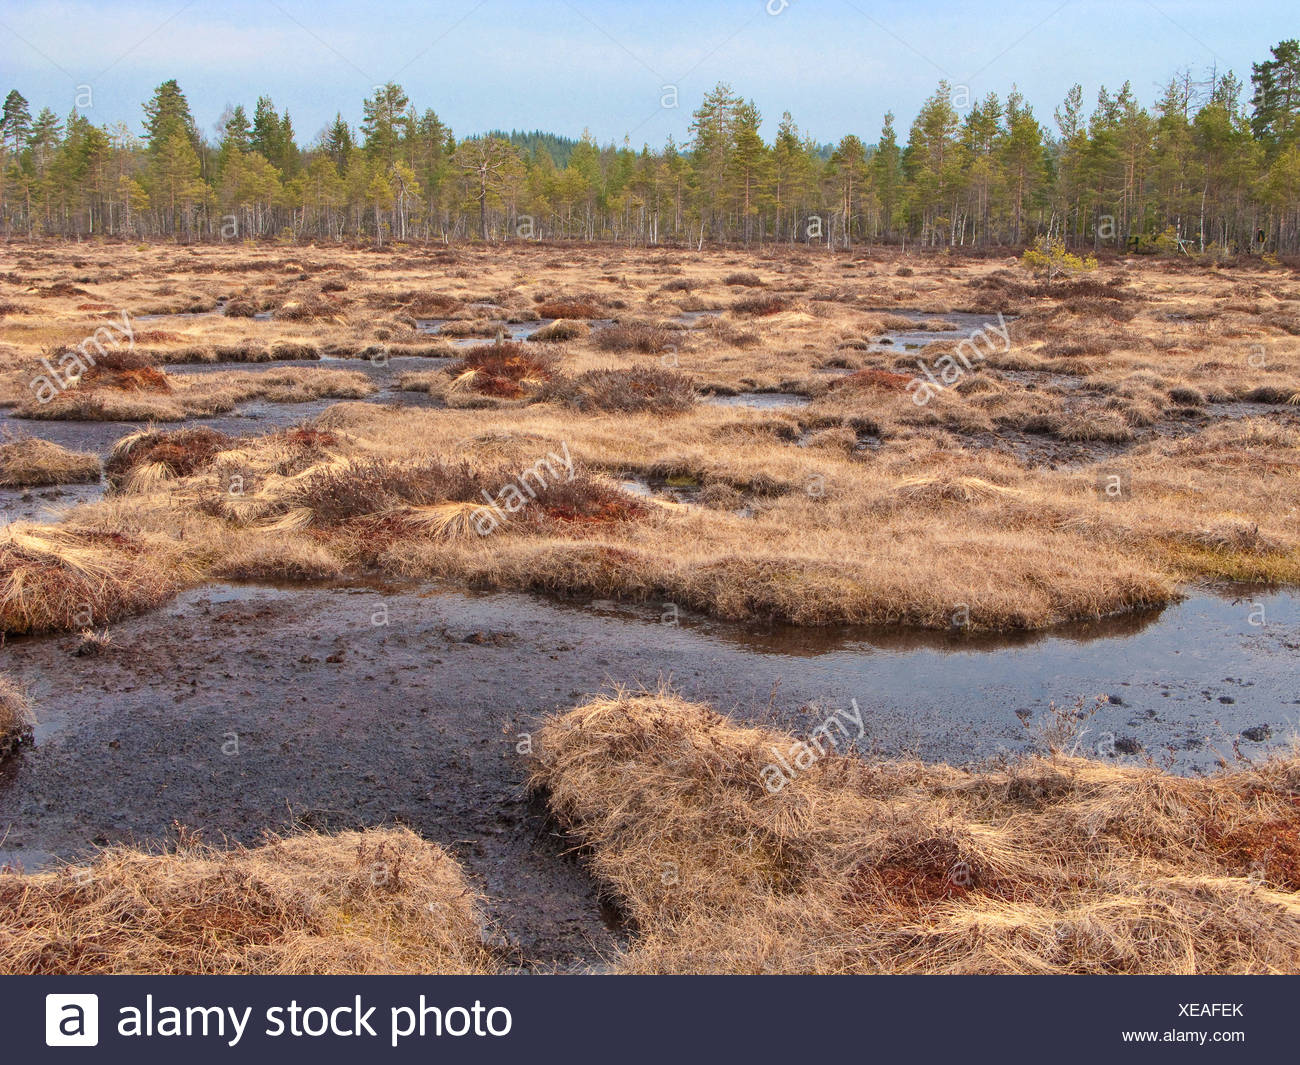 hill moor with pine wood, Norway - Stock Image